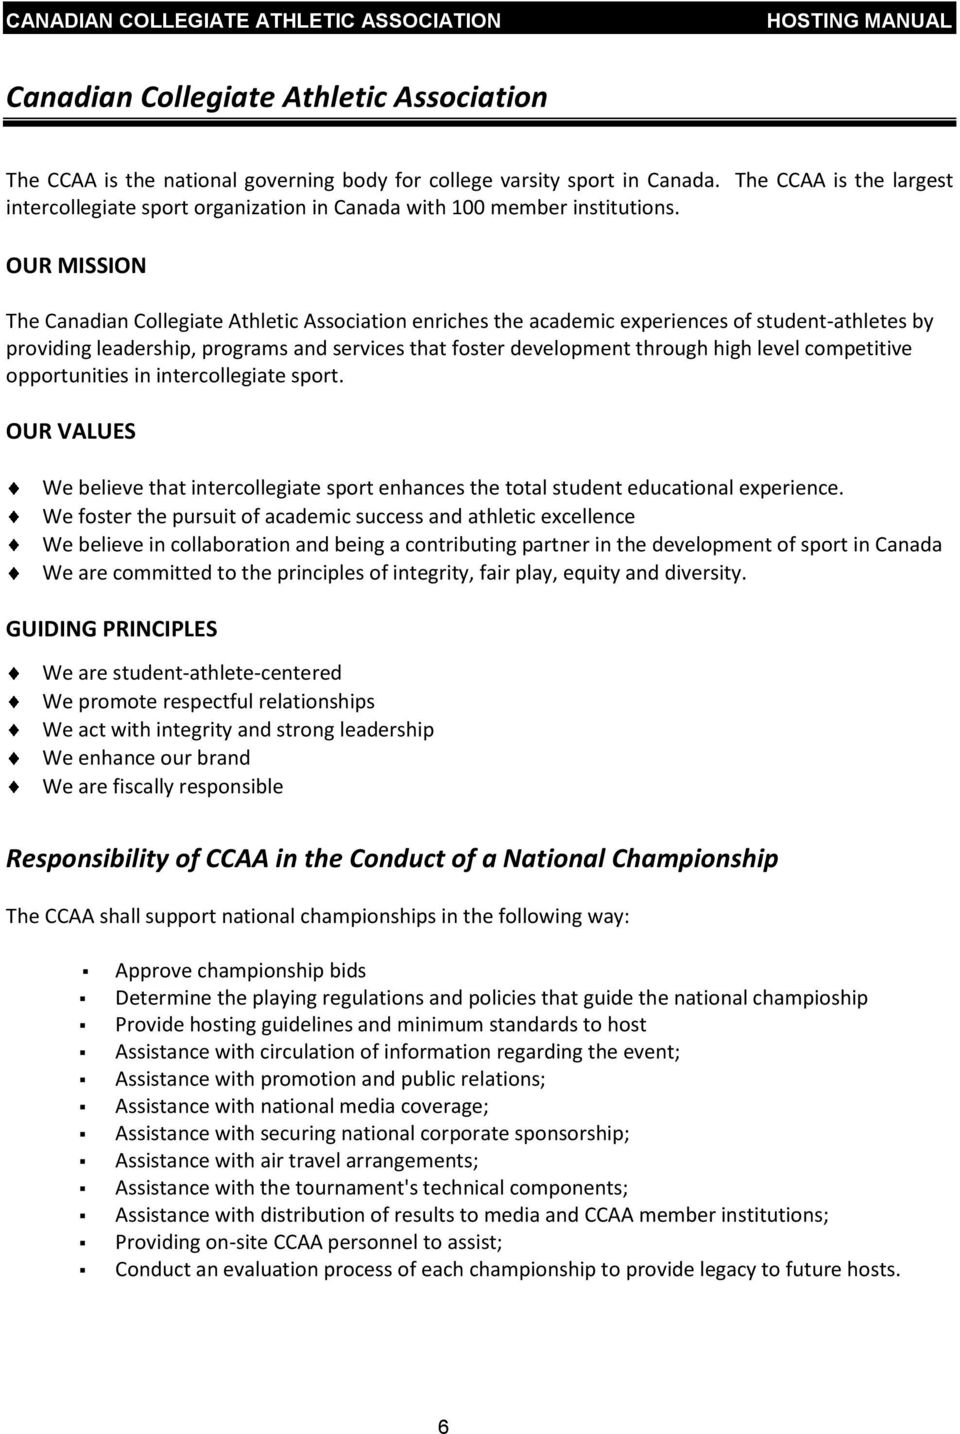 OUR MISSION The Canadian Collegiate Athletic Association enriches the academic experiences of student-athletes by providing leadership, programs and services that foster development through high